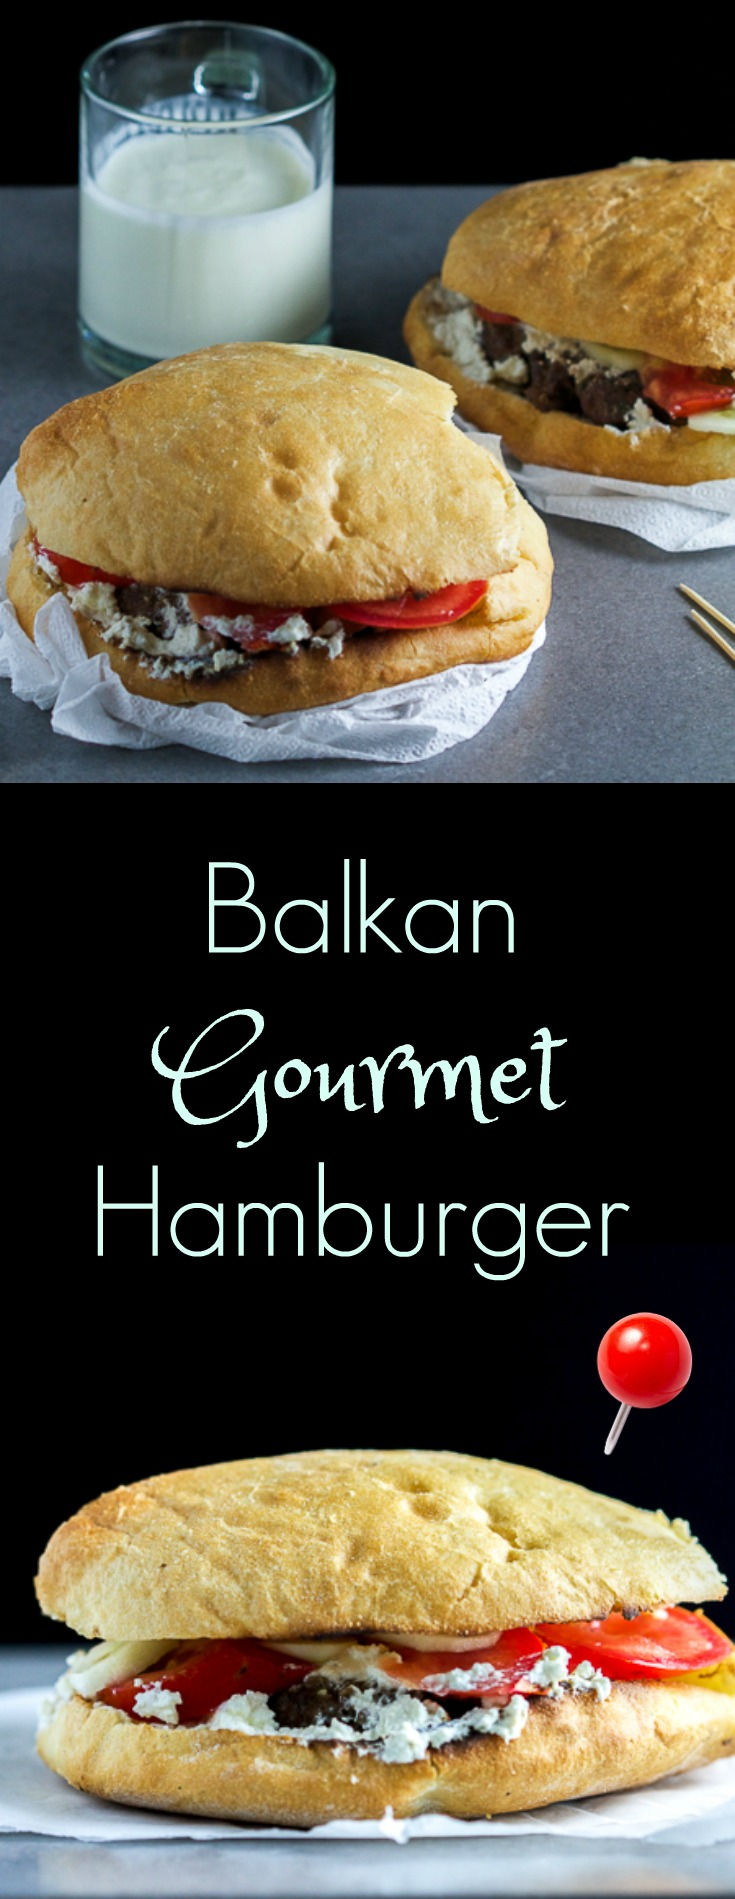 Balkan pljeskavice: gourmet patties for people who are tired of plain hamburgers! Tease your tastebuds with a balanced combination of meat and spices grilled to perfection, then adorned in a moist bun.